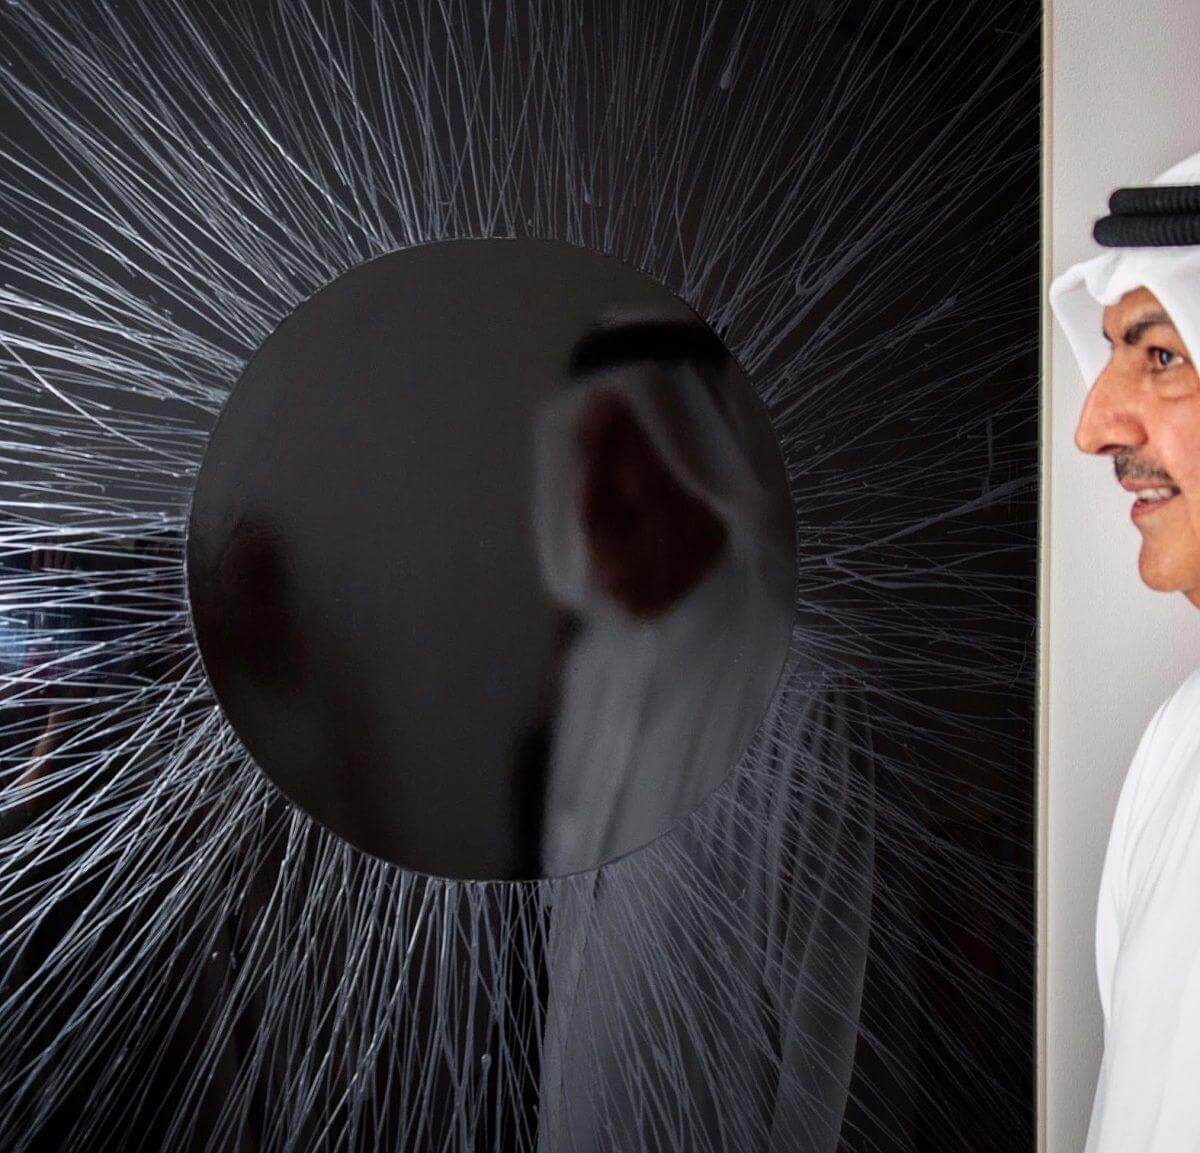 Embracing the Virtual Display: An Interview with Bahraini artist Sheikh Rashid bin Khalifa